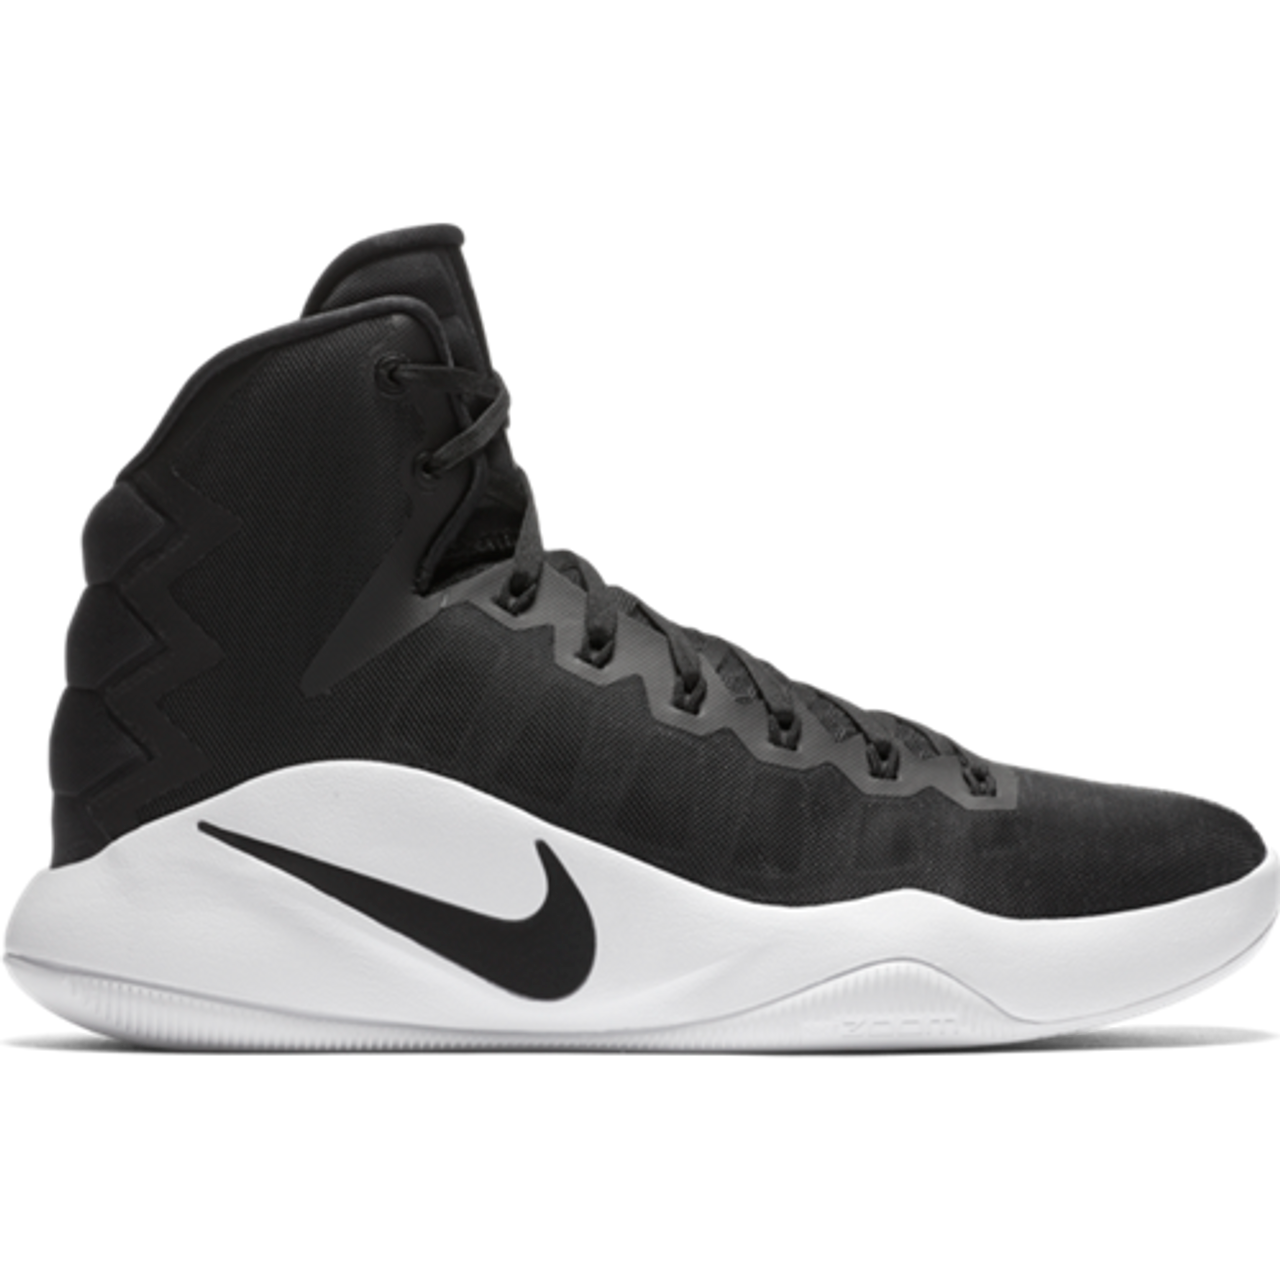 new product b3402 468a2 Nike HyperDunk 2016 - Black Black White